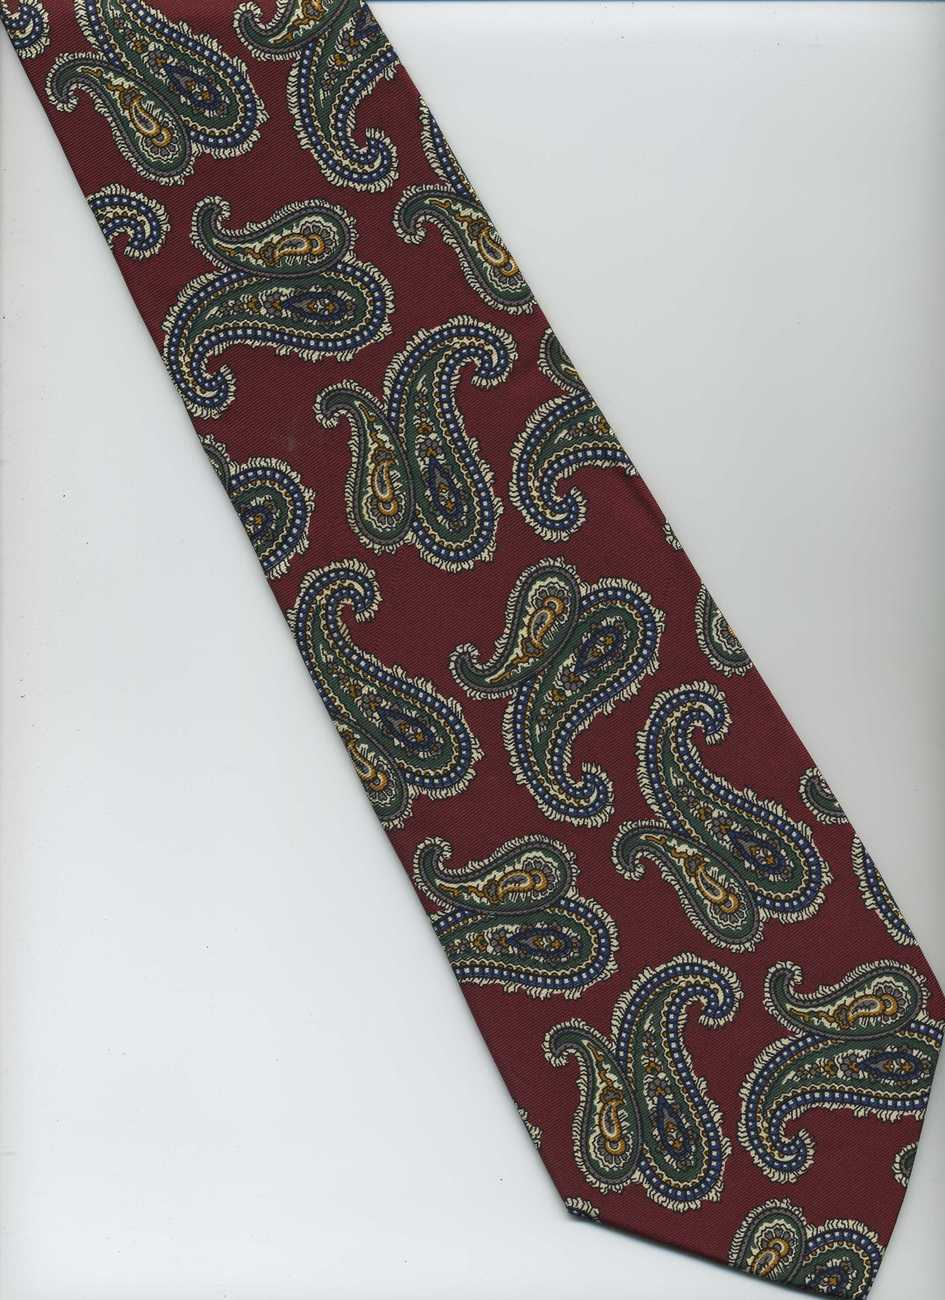 ROUNDTREE & YORKE Tie, for Dillards ~ Maroon, Green, White ~ Paisley Silk Tie